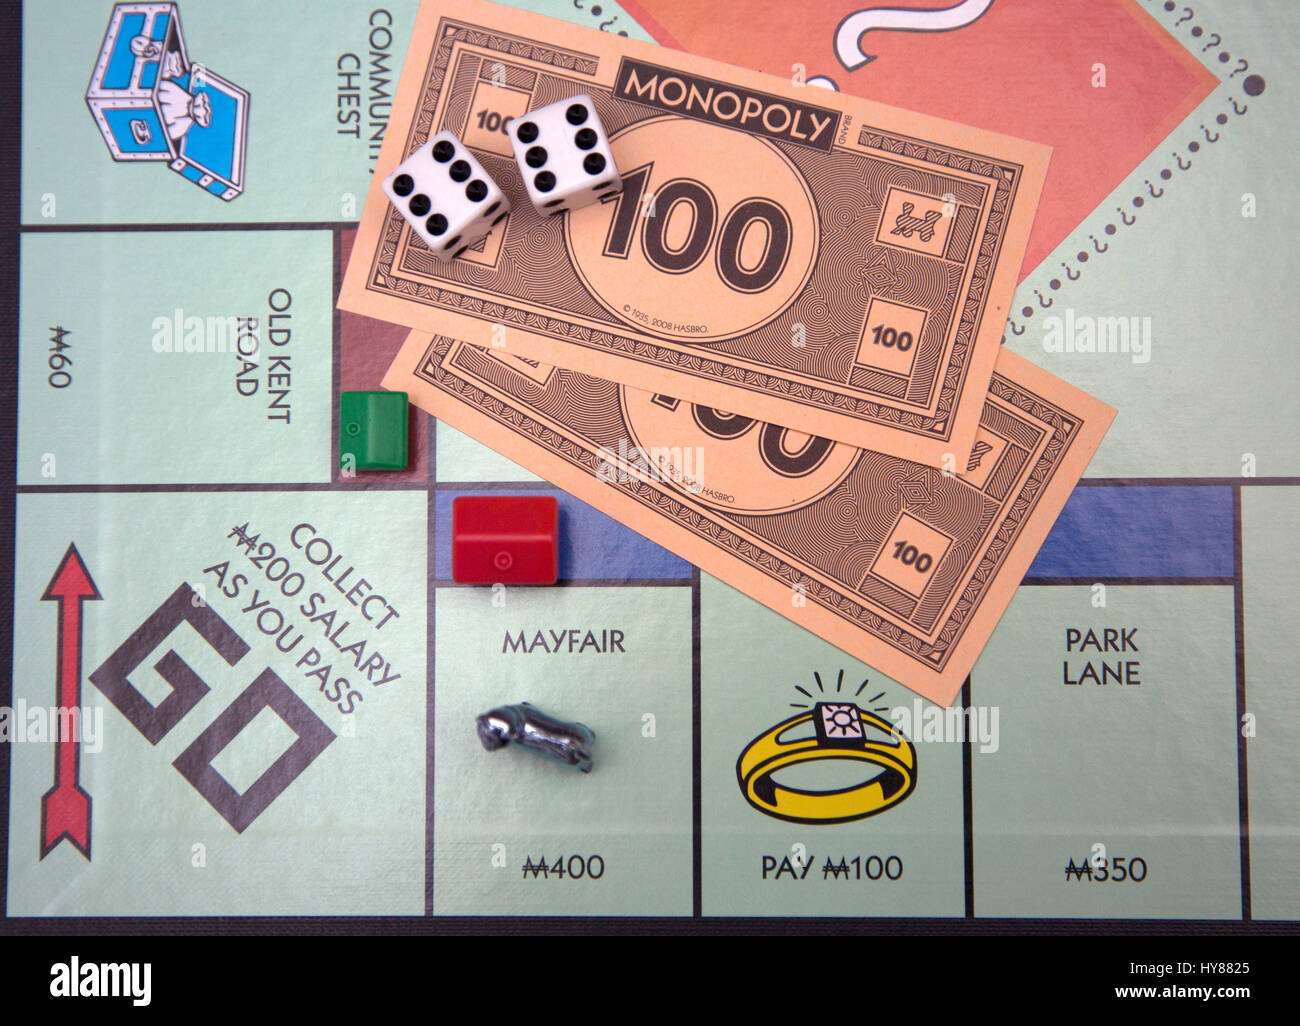 Monopoly remains a popular board game, London - Stock Image